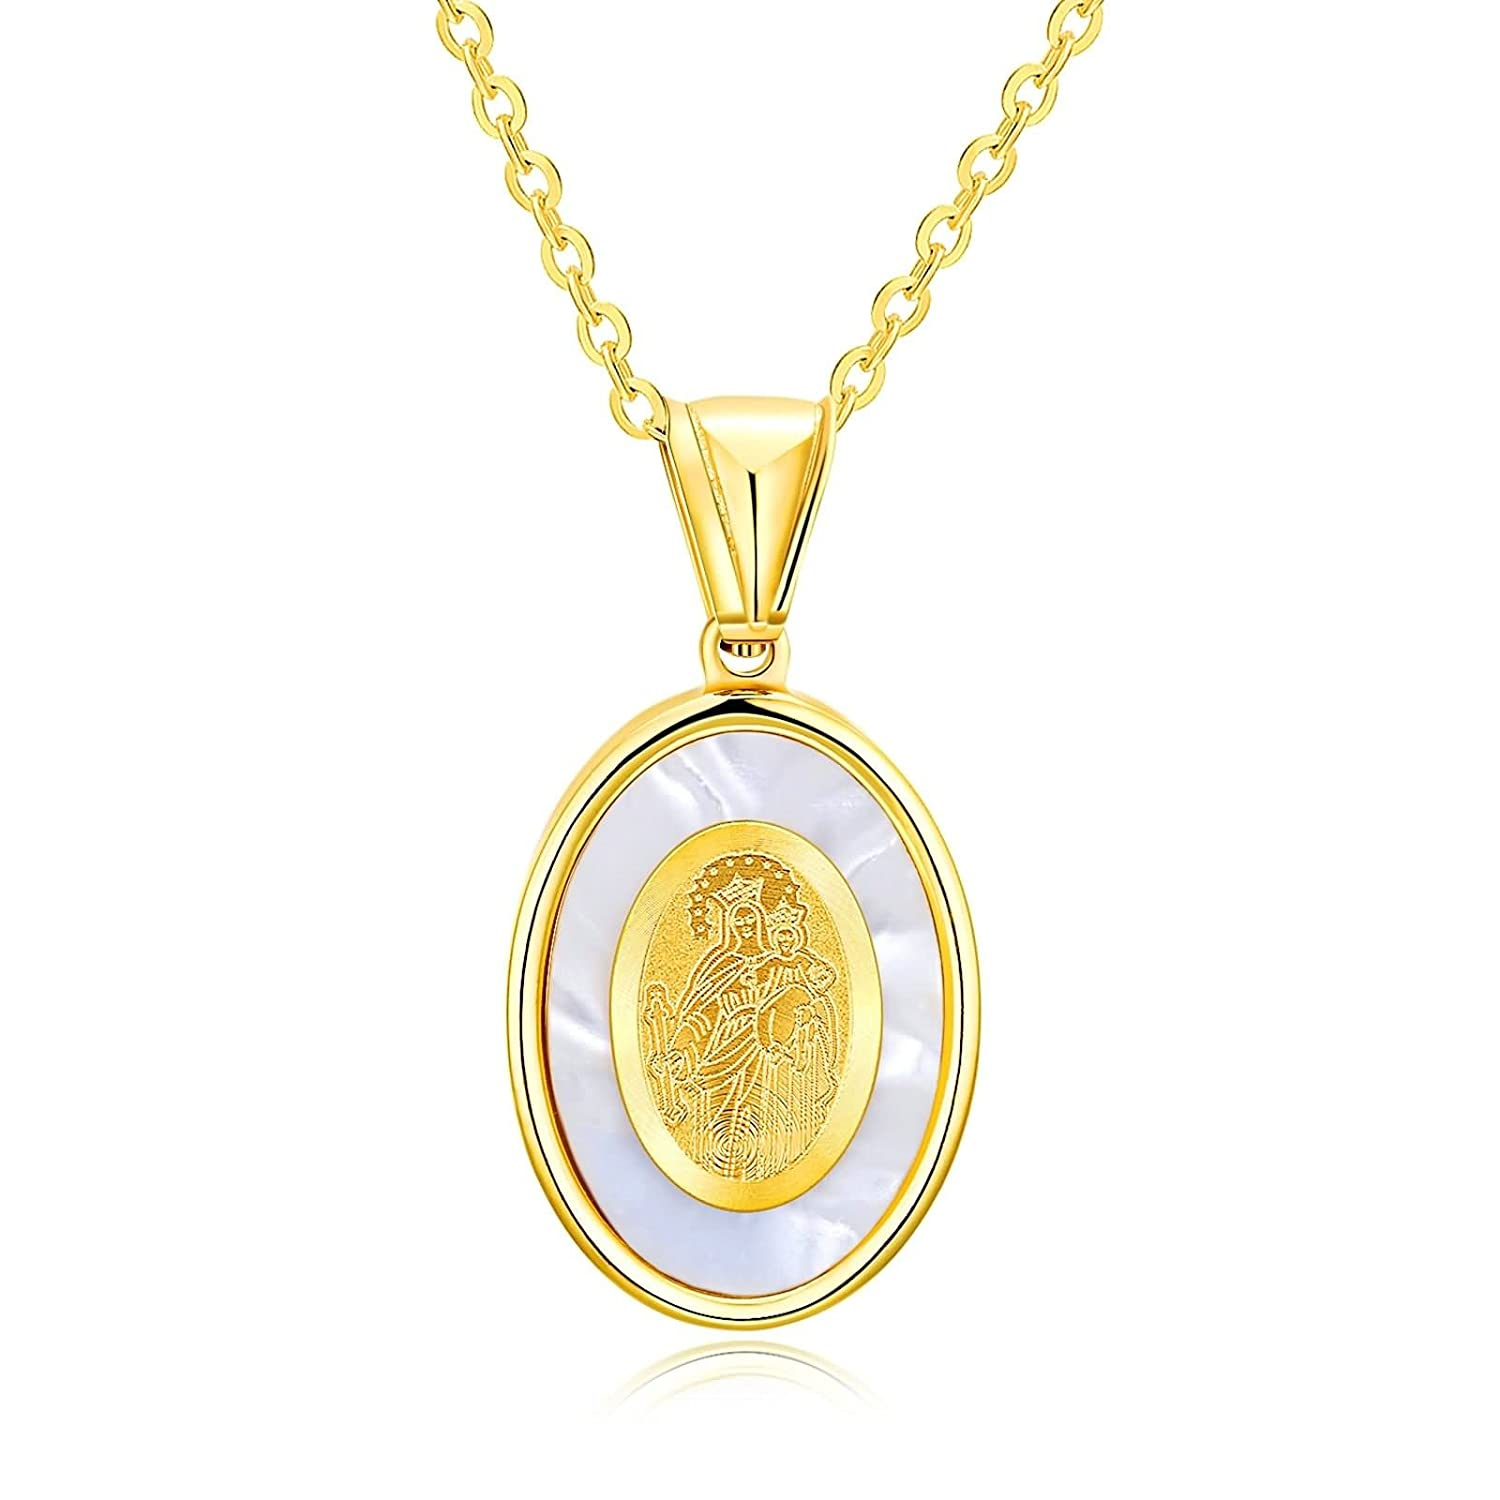 Aooaz Jewelry Pendant Necklaces Stainless Steel Virgin Mary Oval Necklaces for Women